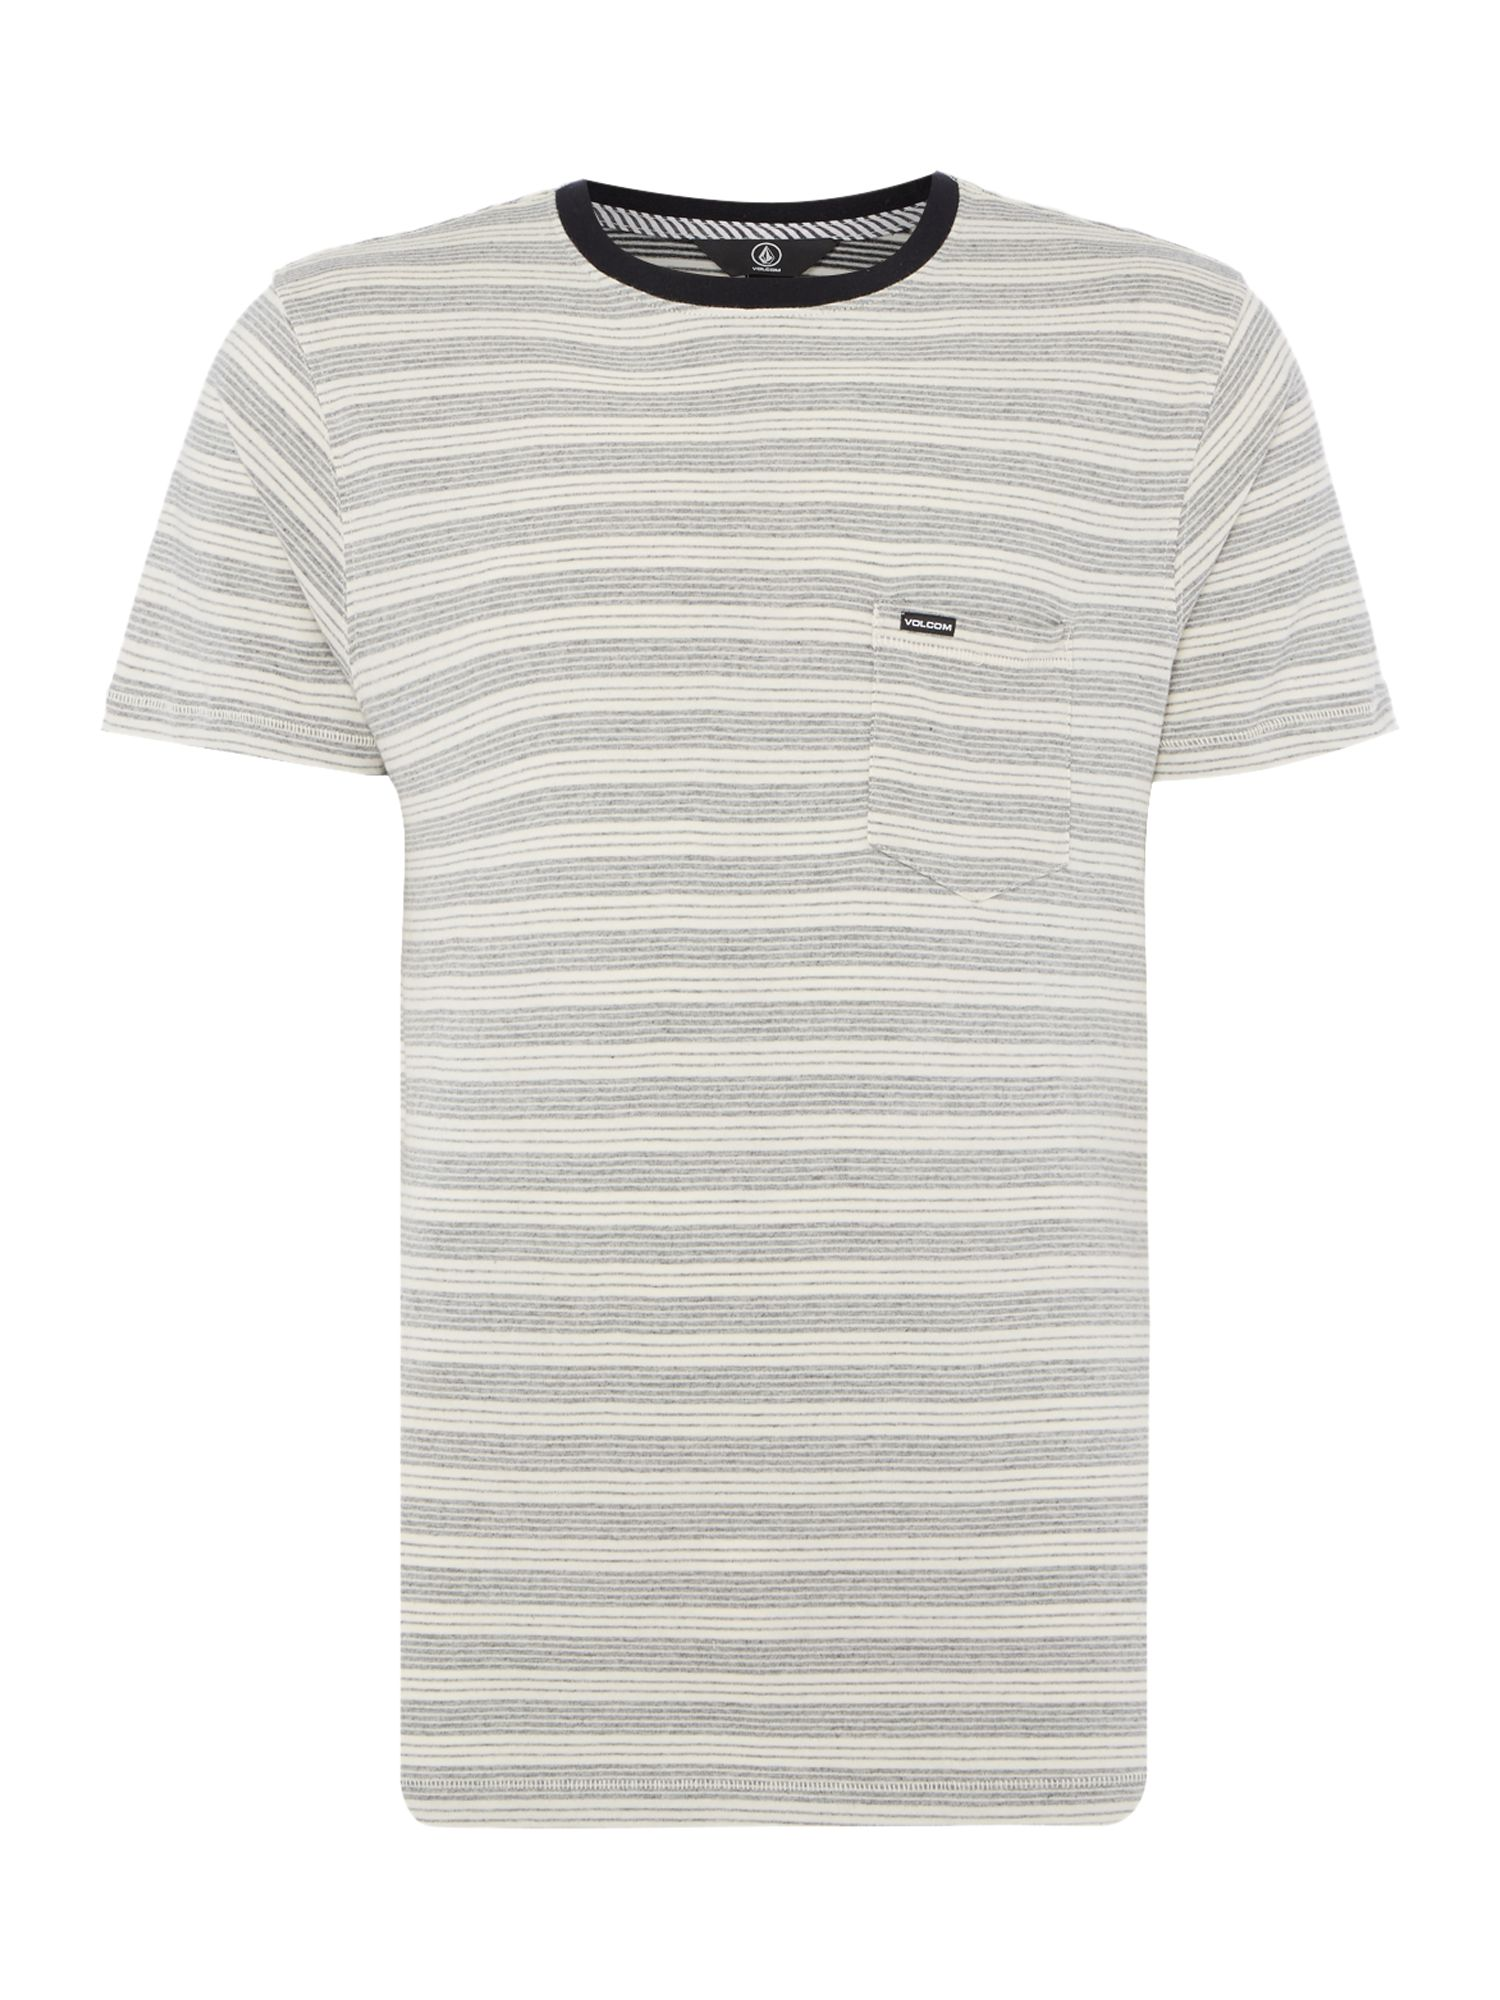 Men's Volcom Striped Crew-Neck T-Shirt, White